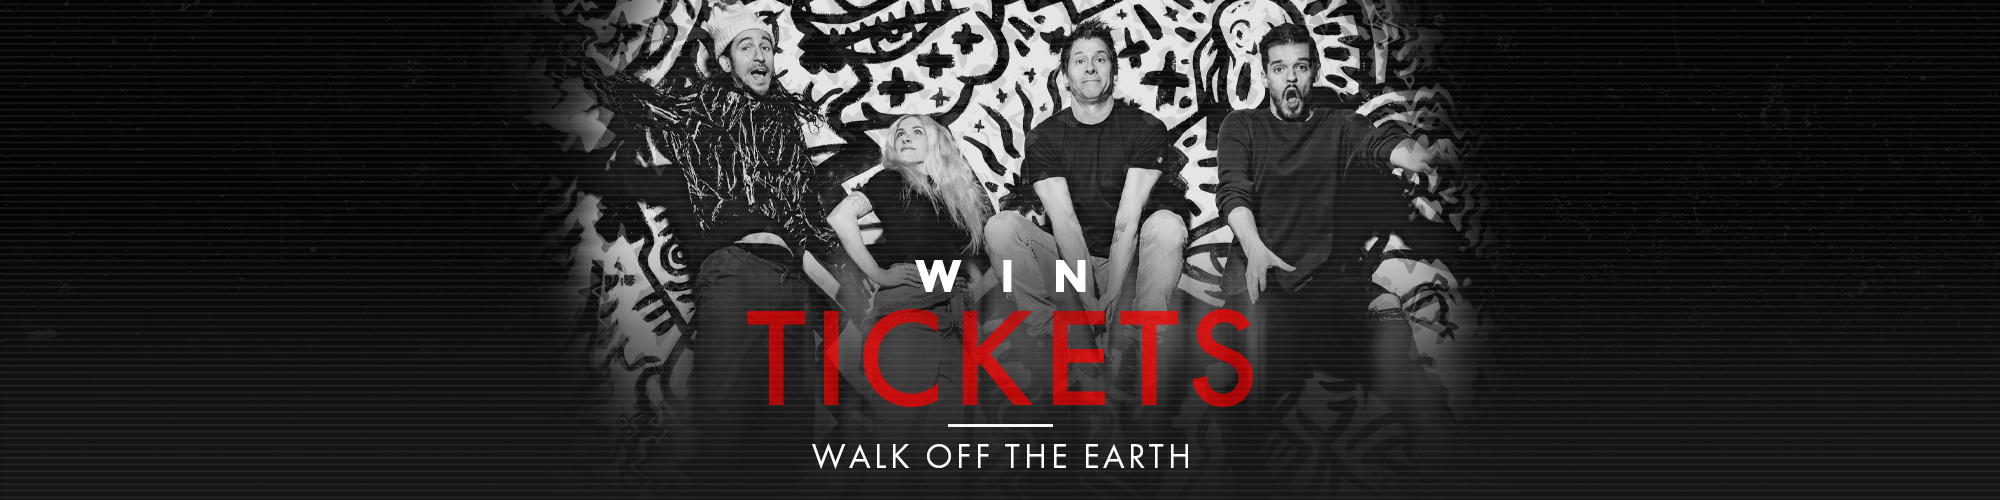 Walk Off The Earth Tickets Contest Banner